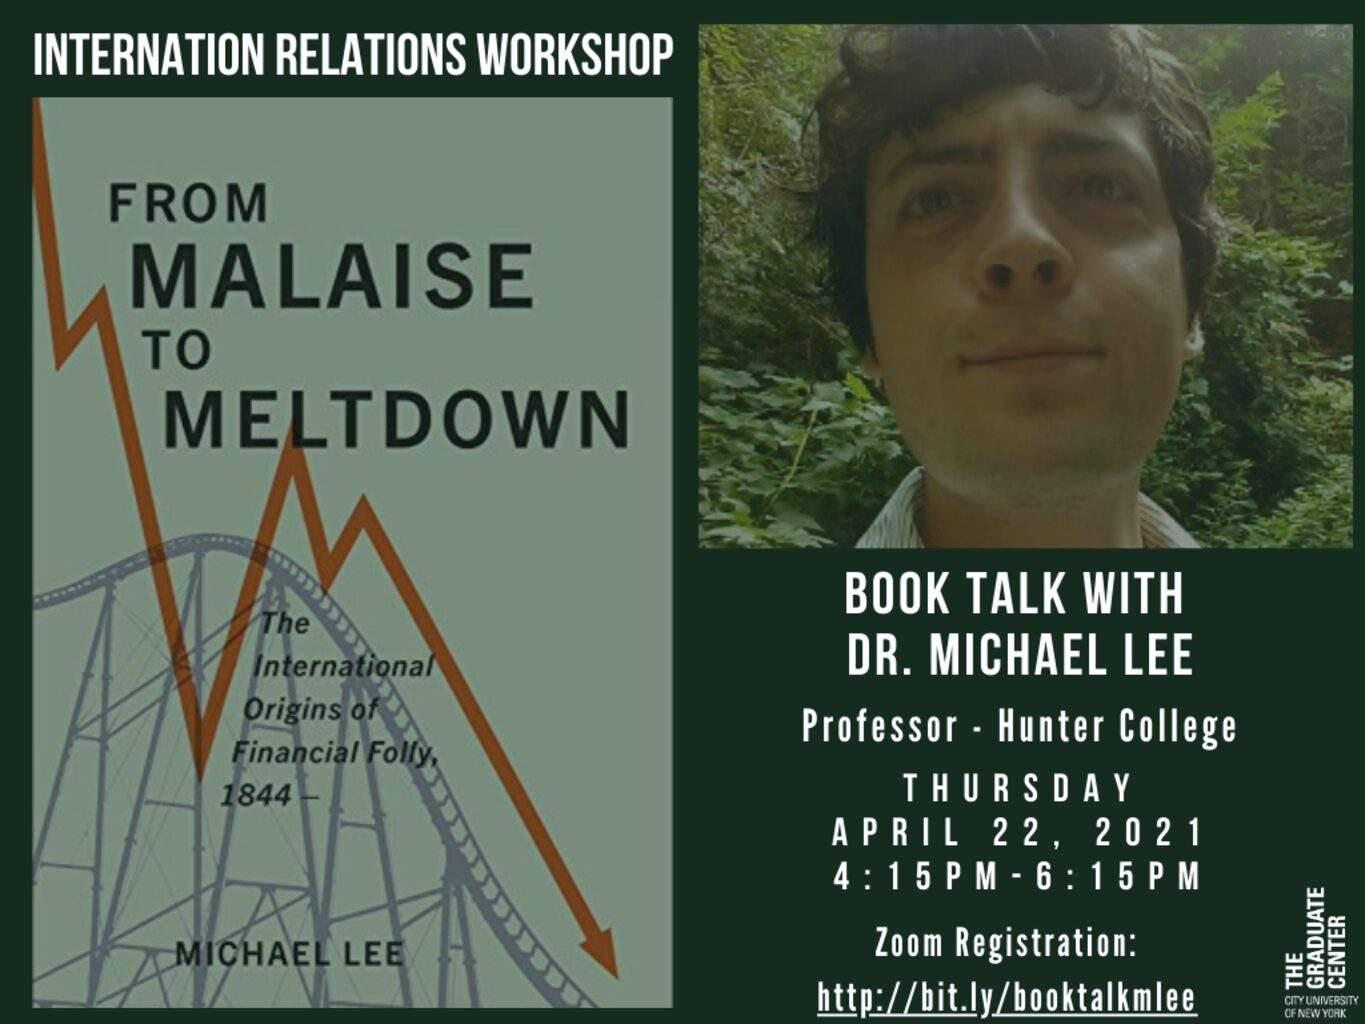 """International Relations Workshop: Michael Lee, """"From Malaise to Meltdown: The International Origins of Financial Folly, 1844,"""" Thursday, April 22, 4:30-6:30pm"""